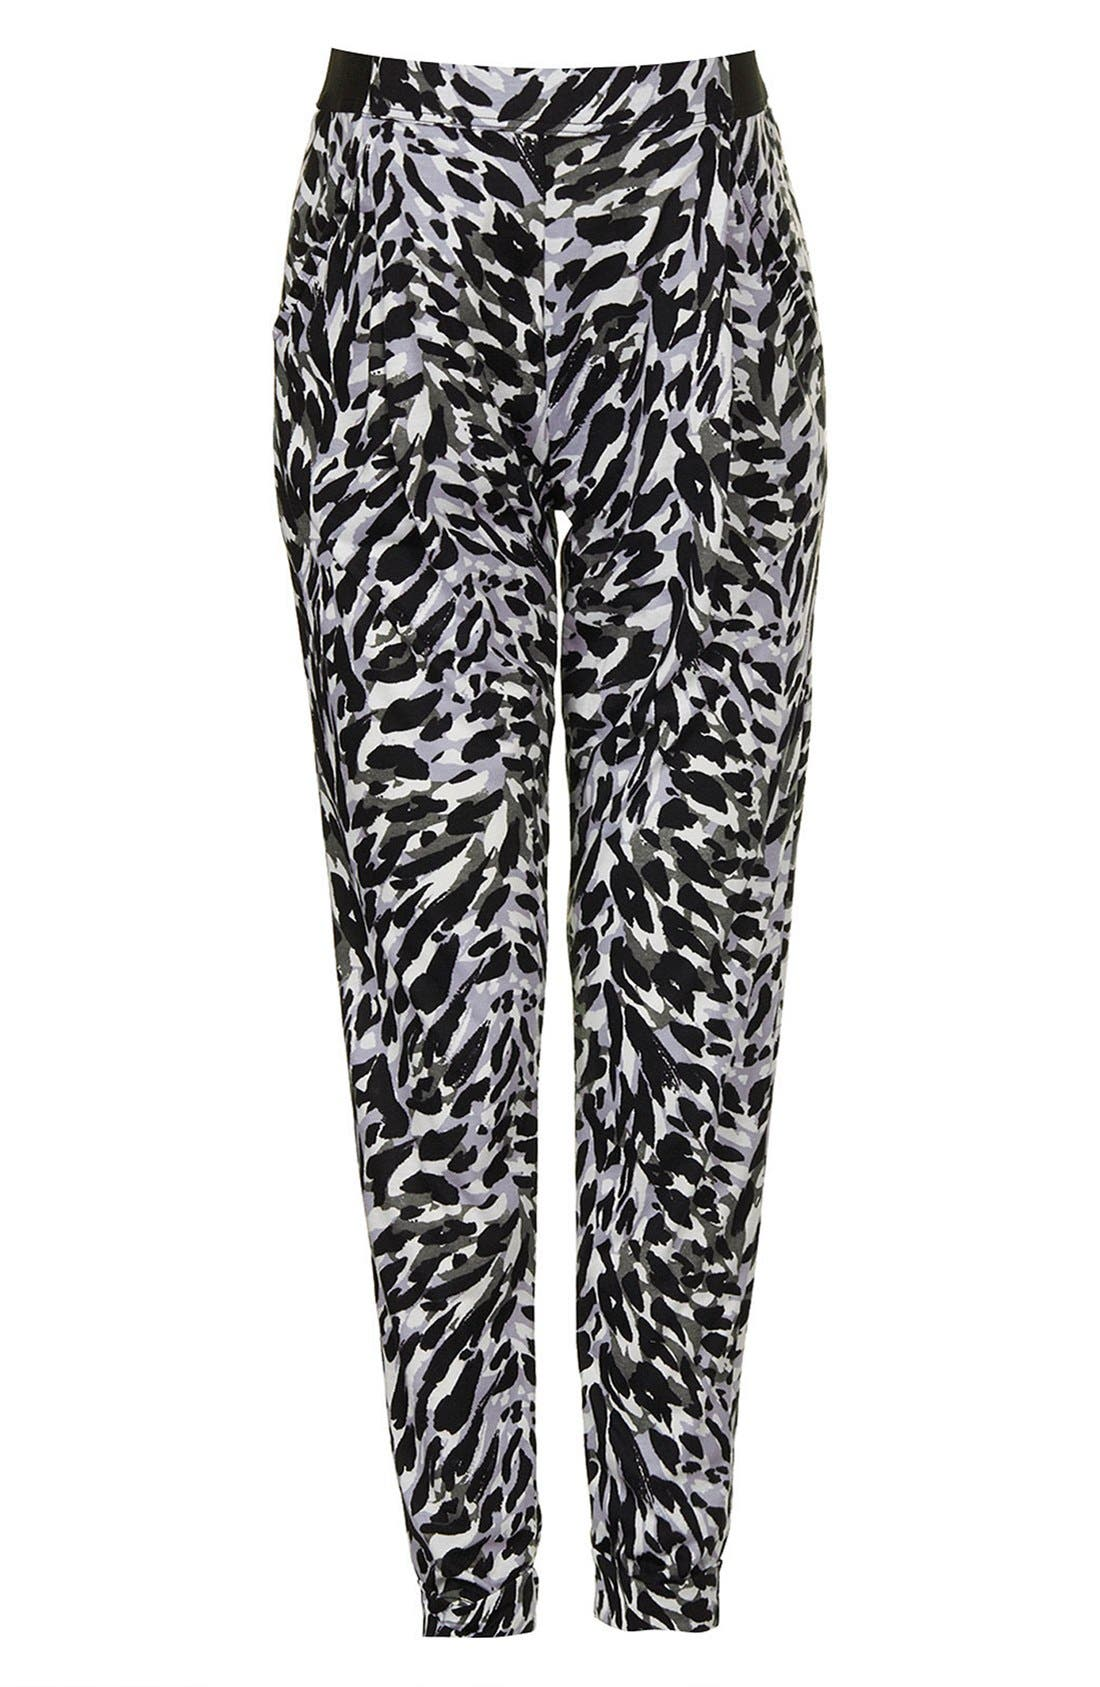 Alternate Image 1 Selected - Topshop 'Contrast Cat' Tapered Maternity Trousers